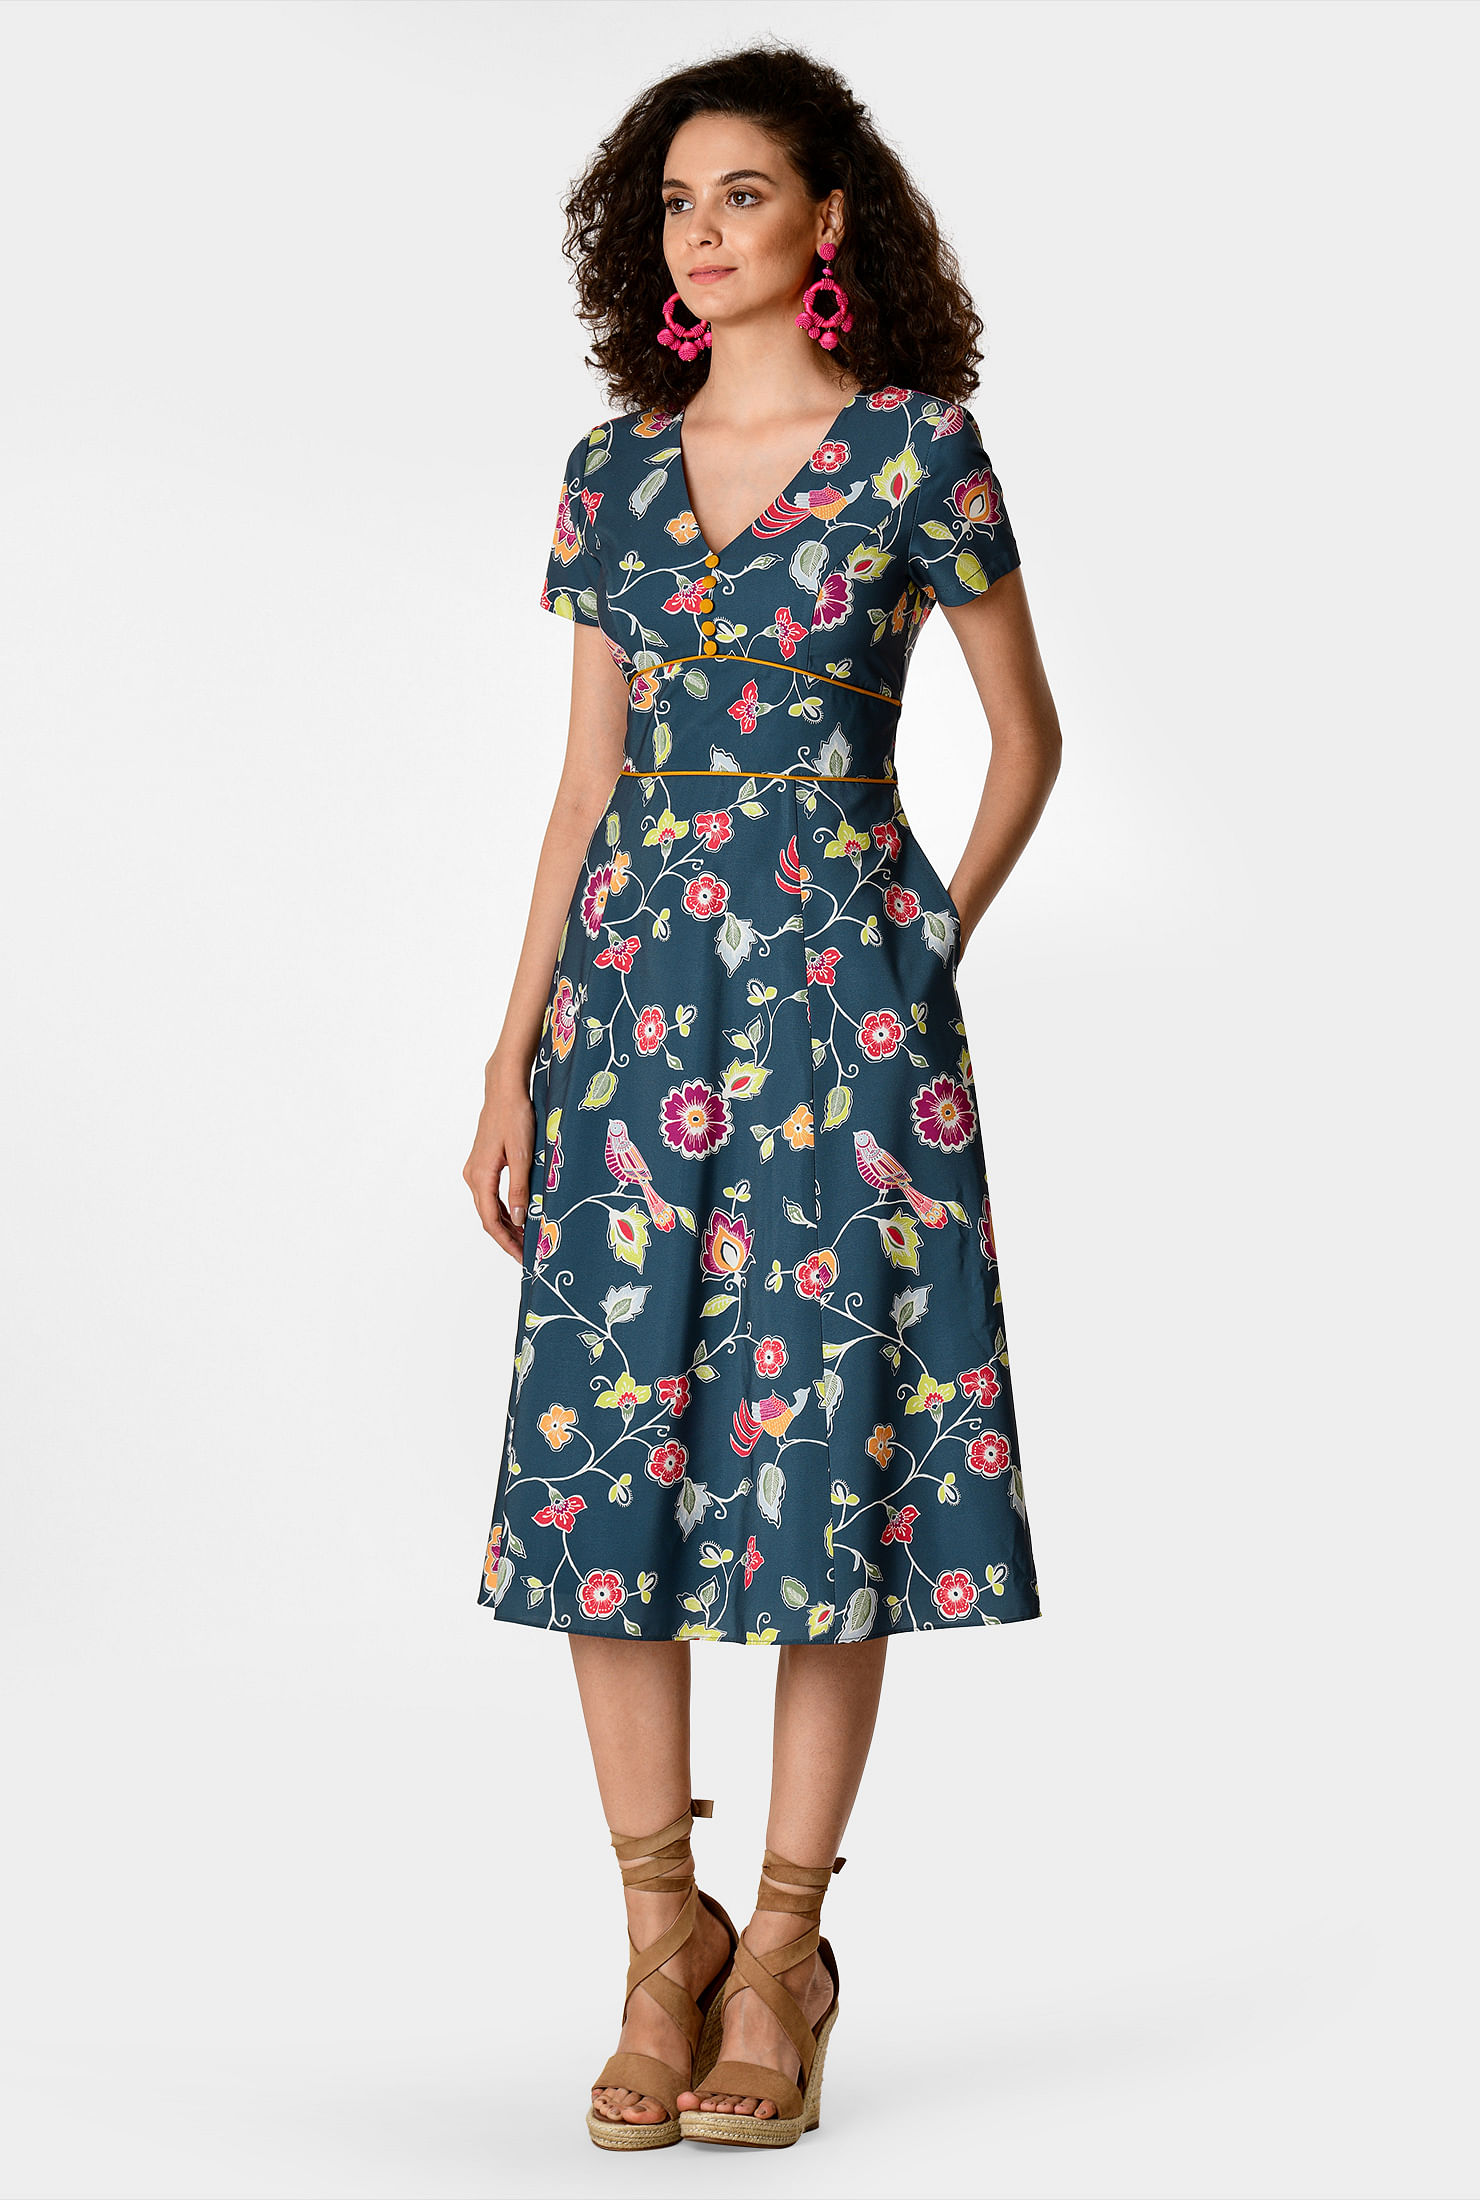 500 Vintage Style Dresses for Sale | Vintage Inspired Dresses Floral print crepe banded empire dress $54.95 AT vintagedancer.com